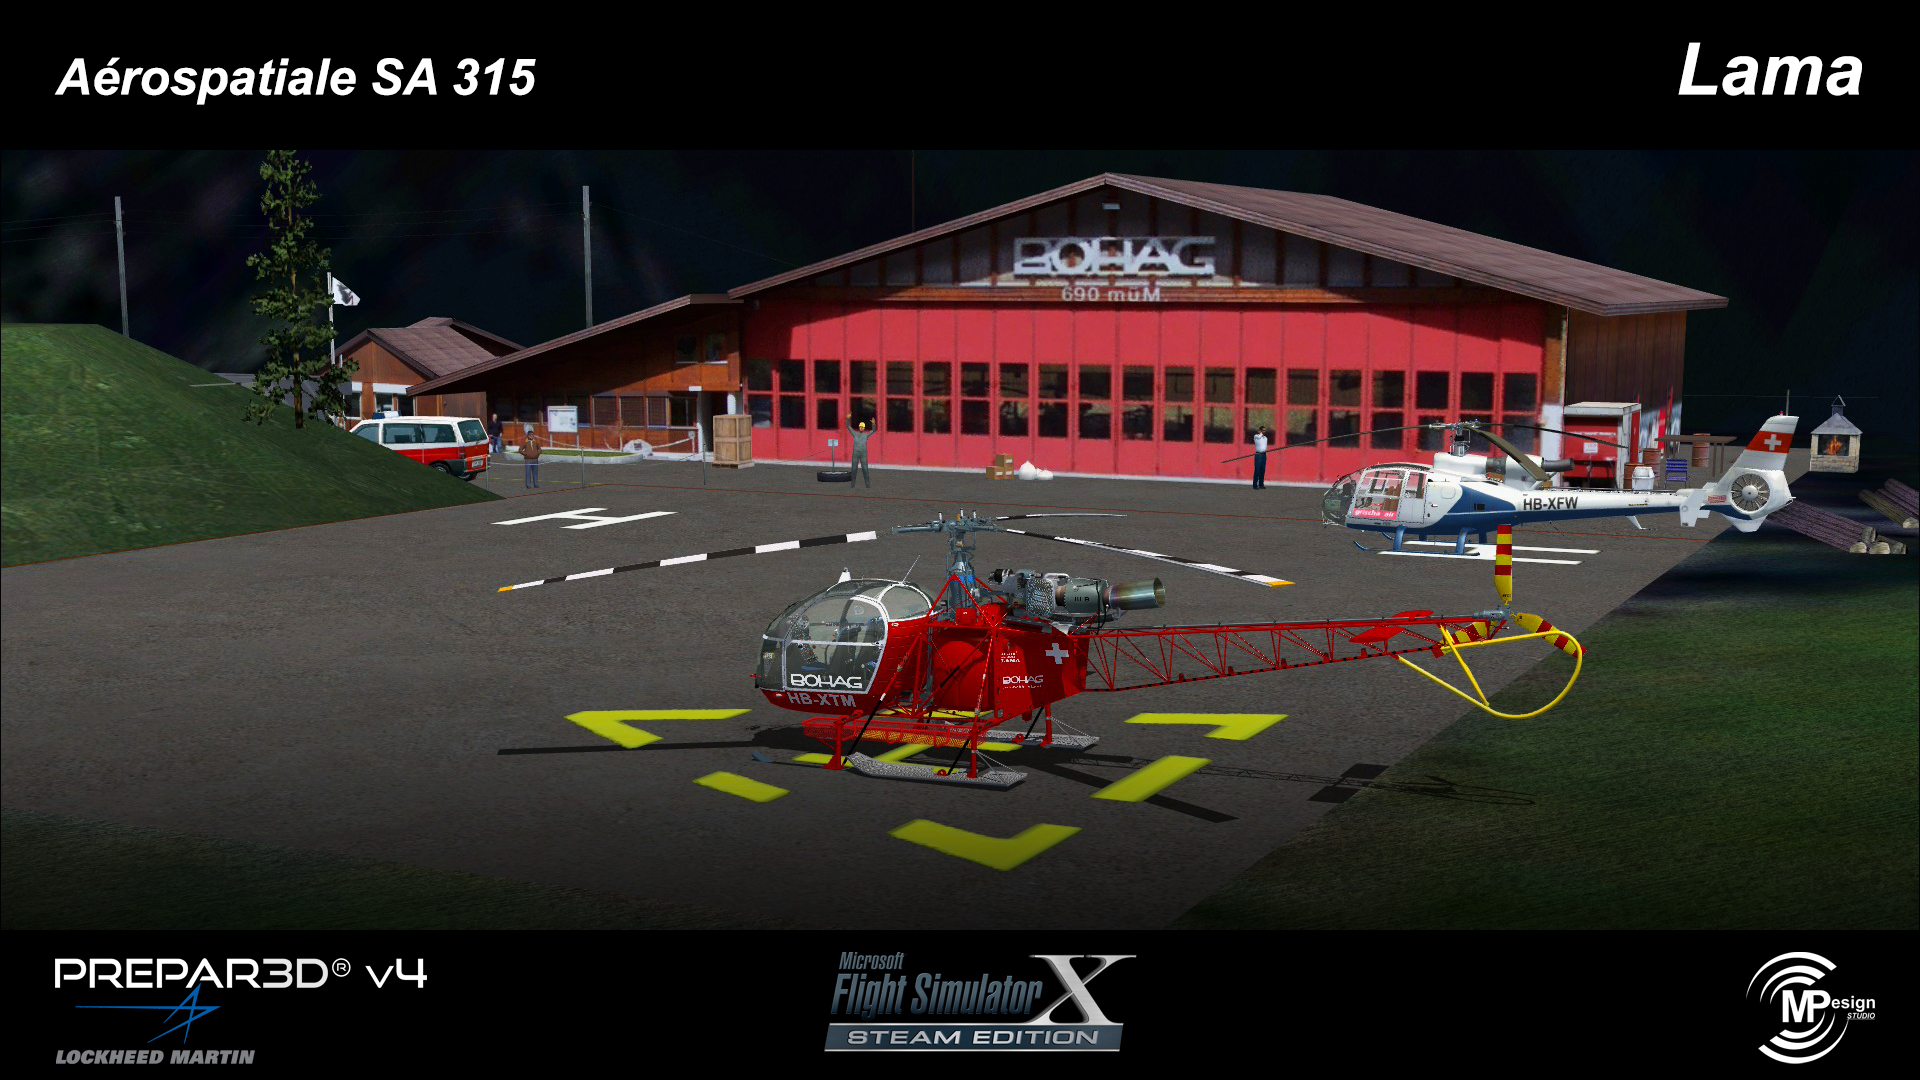 MP DESIGN STUDIO - AEROSPATIALE SA315 LAMA FSX P3D